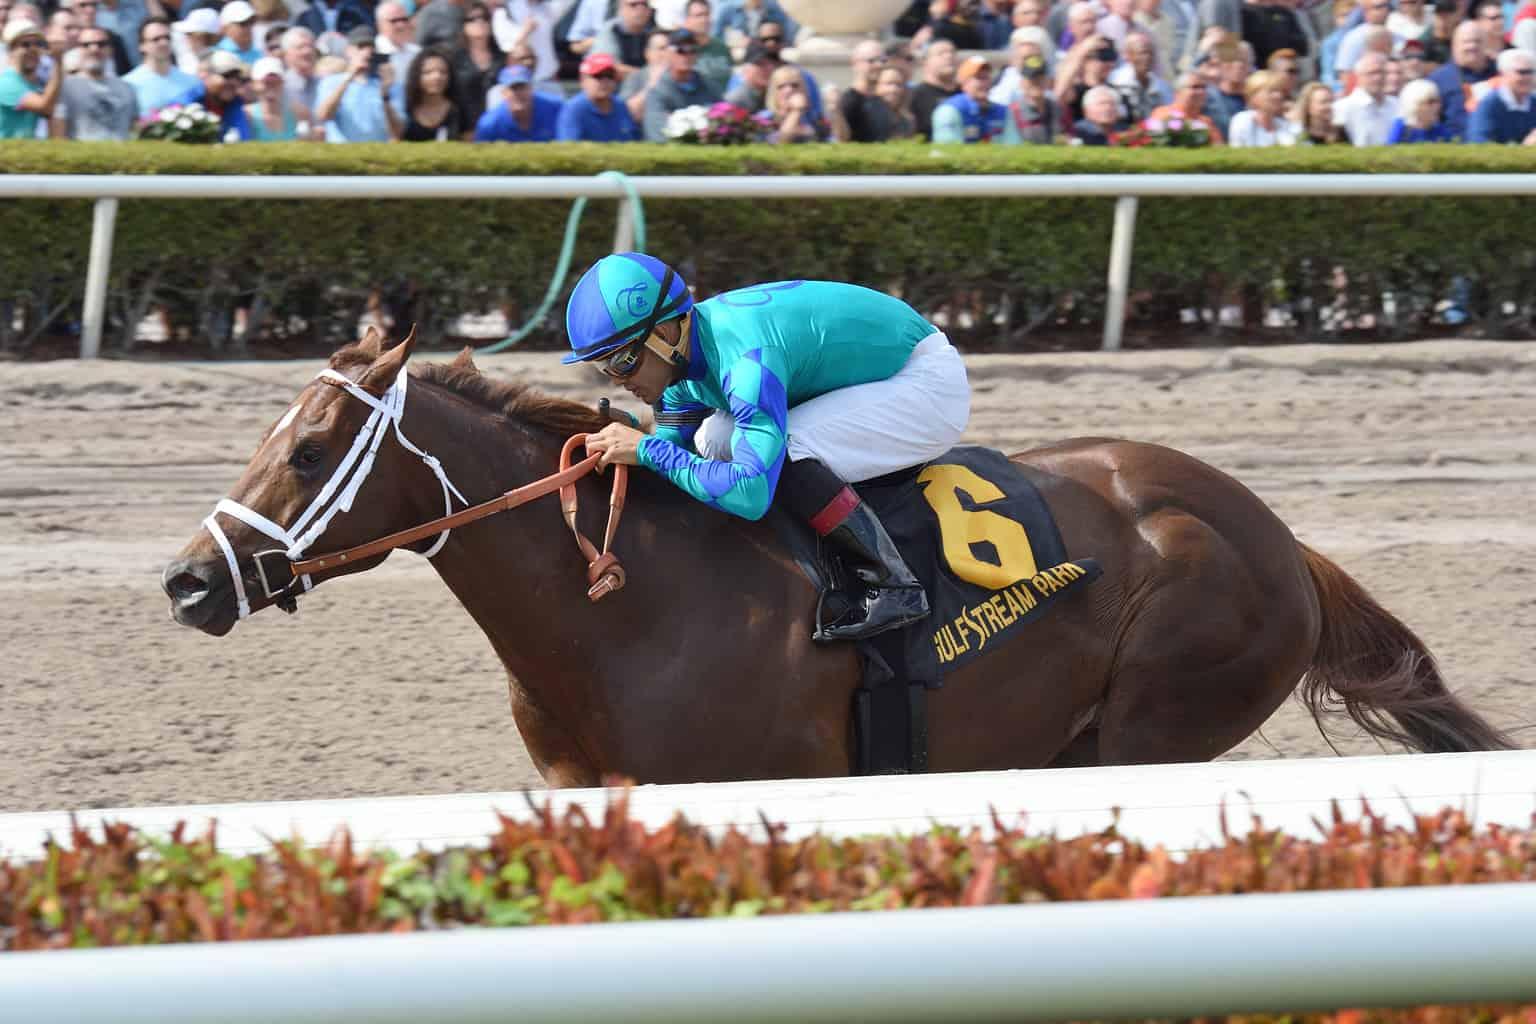 A record 2010 billion was wagered via Gulfstream Park in 2018